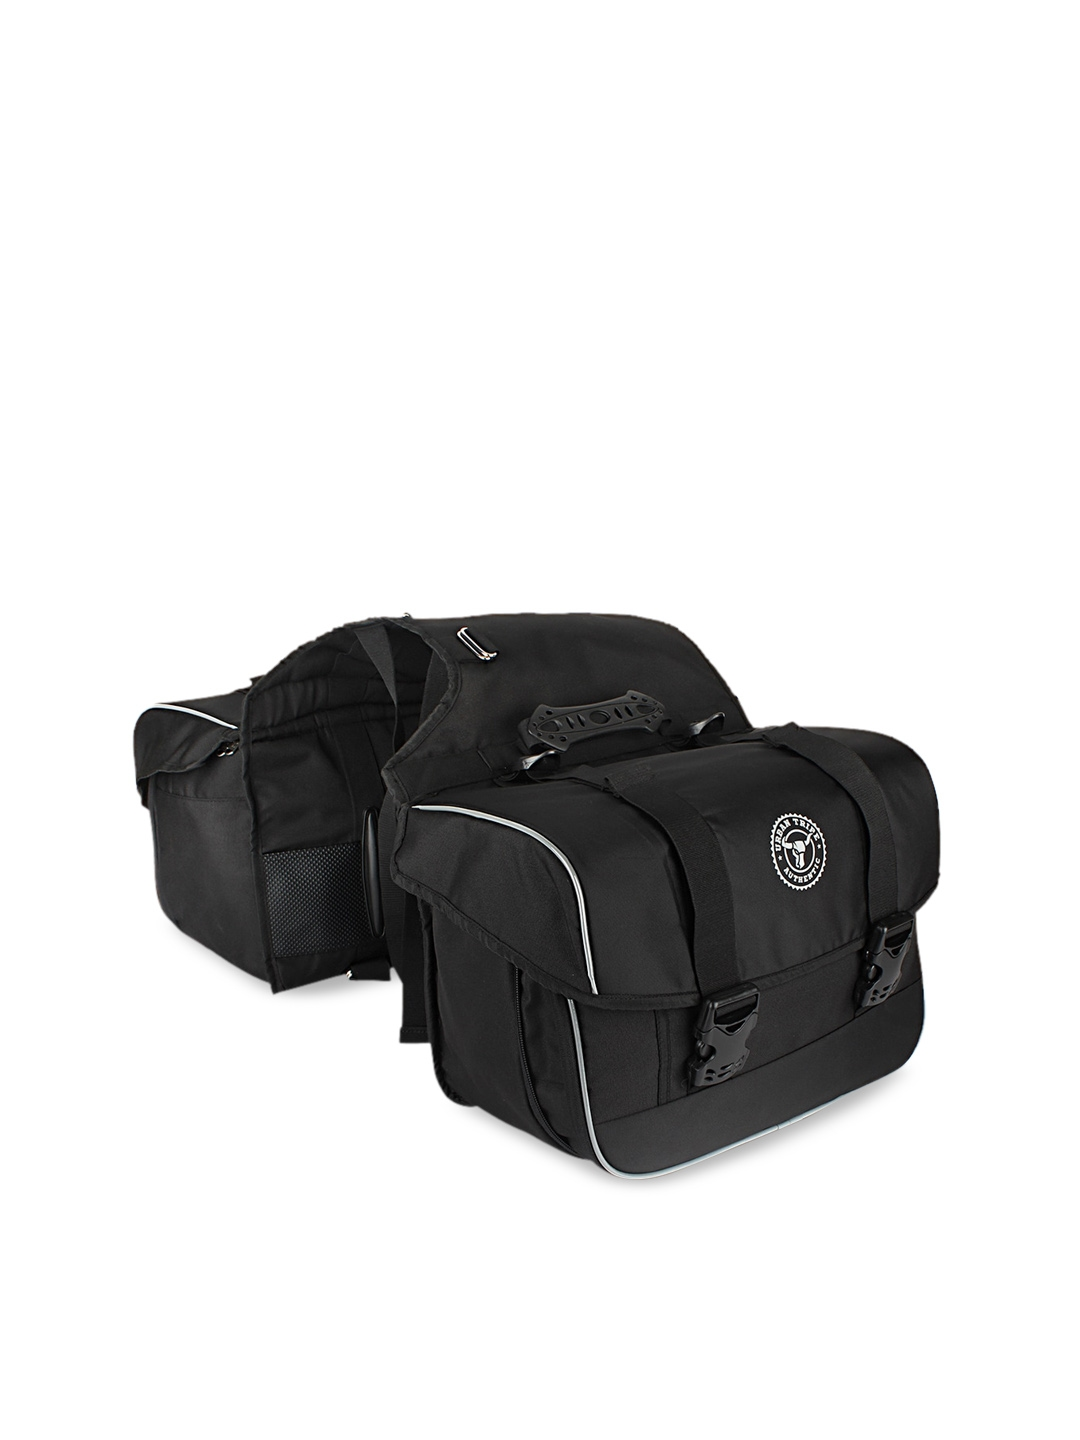 URBAN TRIBE Unisex Black Solid Travel Expandable Saddle Bag